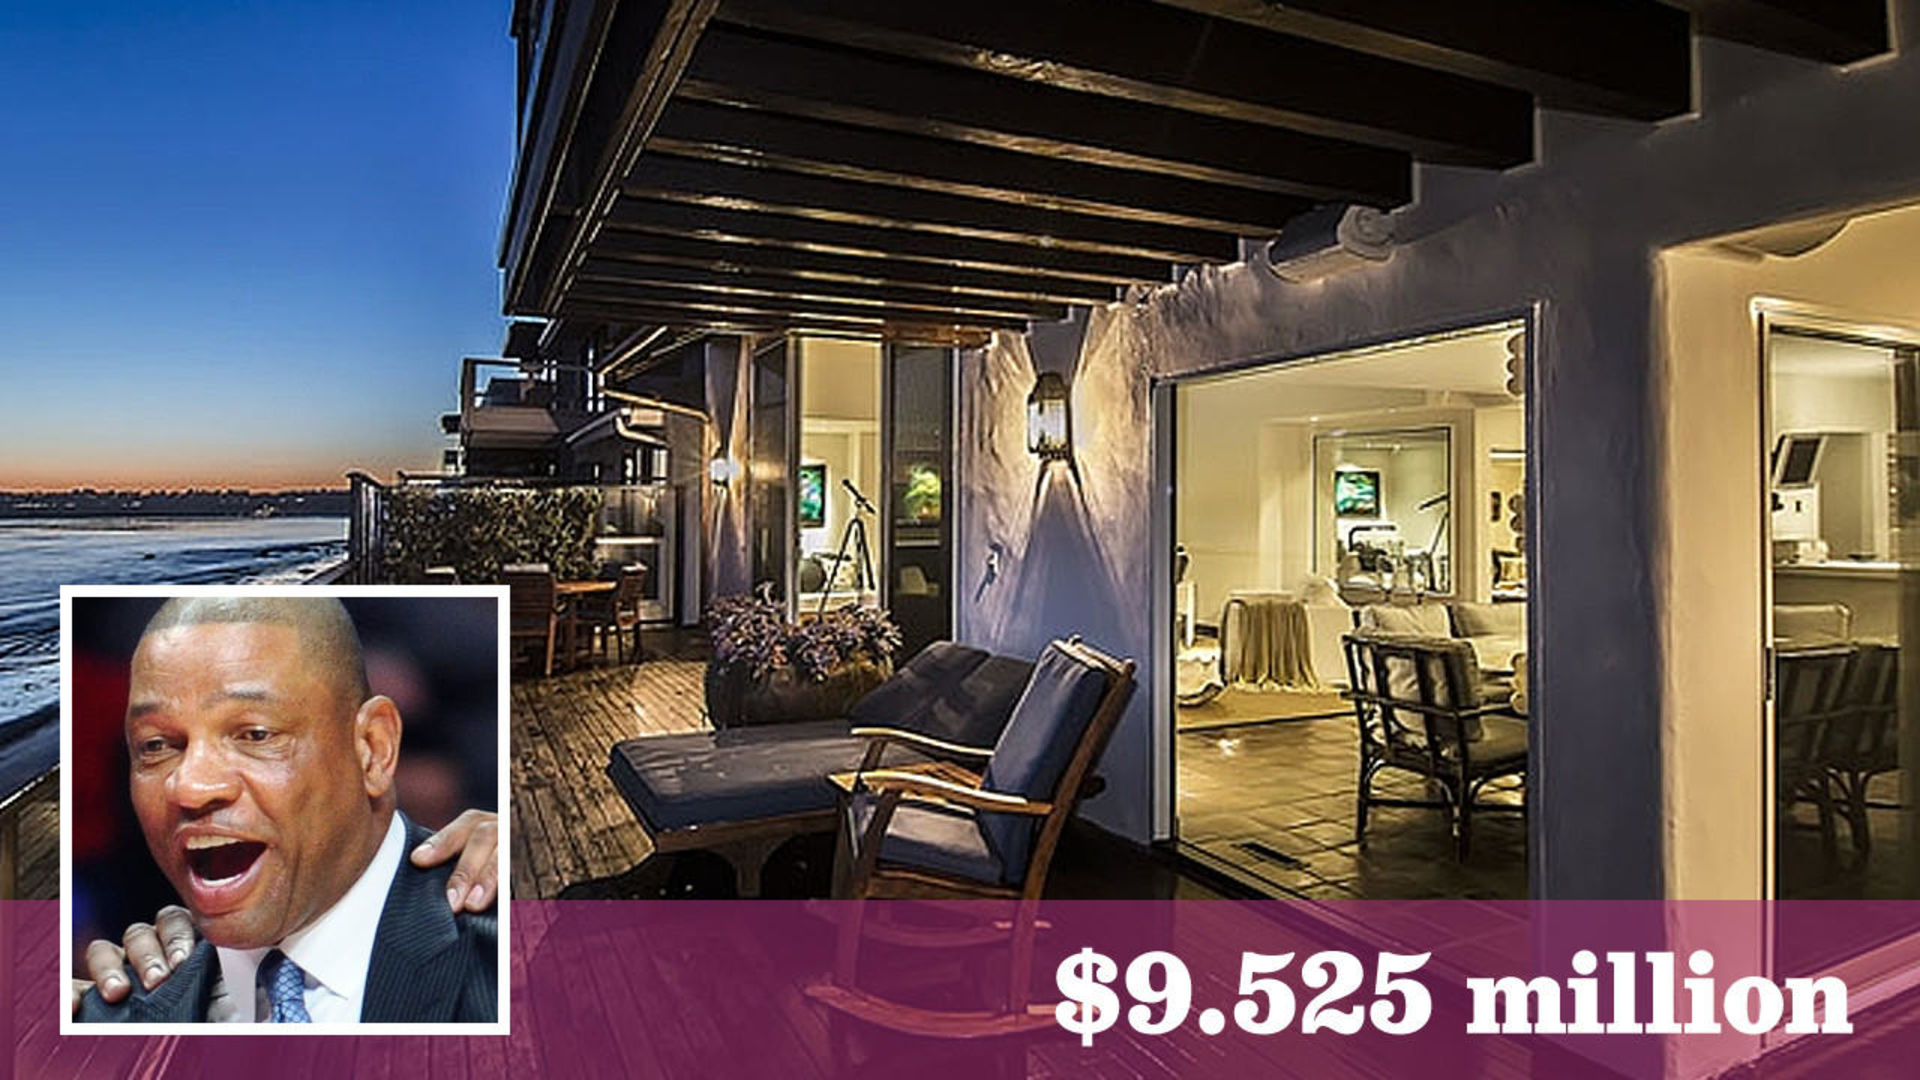 BUSINESS  REAL ESTATE  Hot Property Clippers coach Doc Rivers makes off-court move: a new $9.5-million home in Malibu